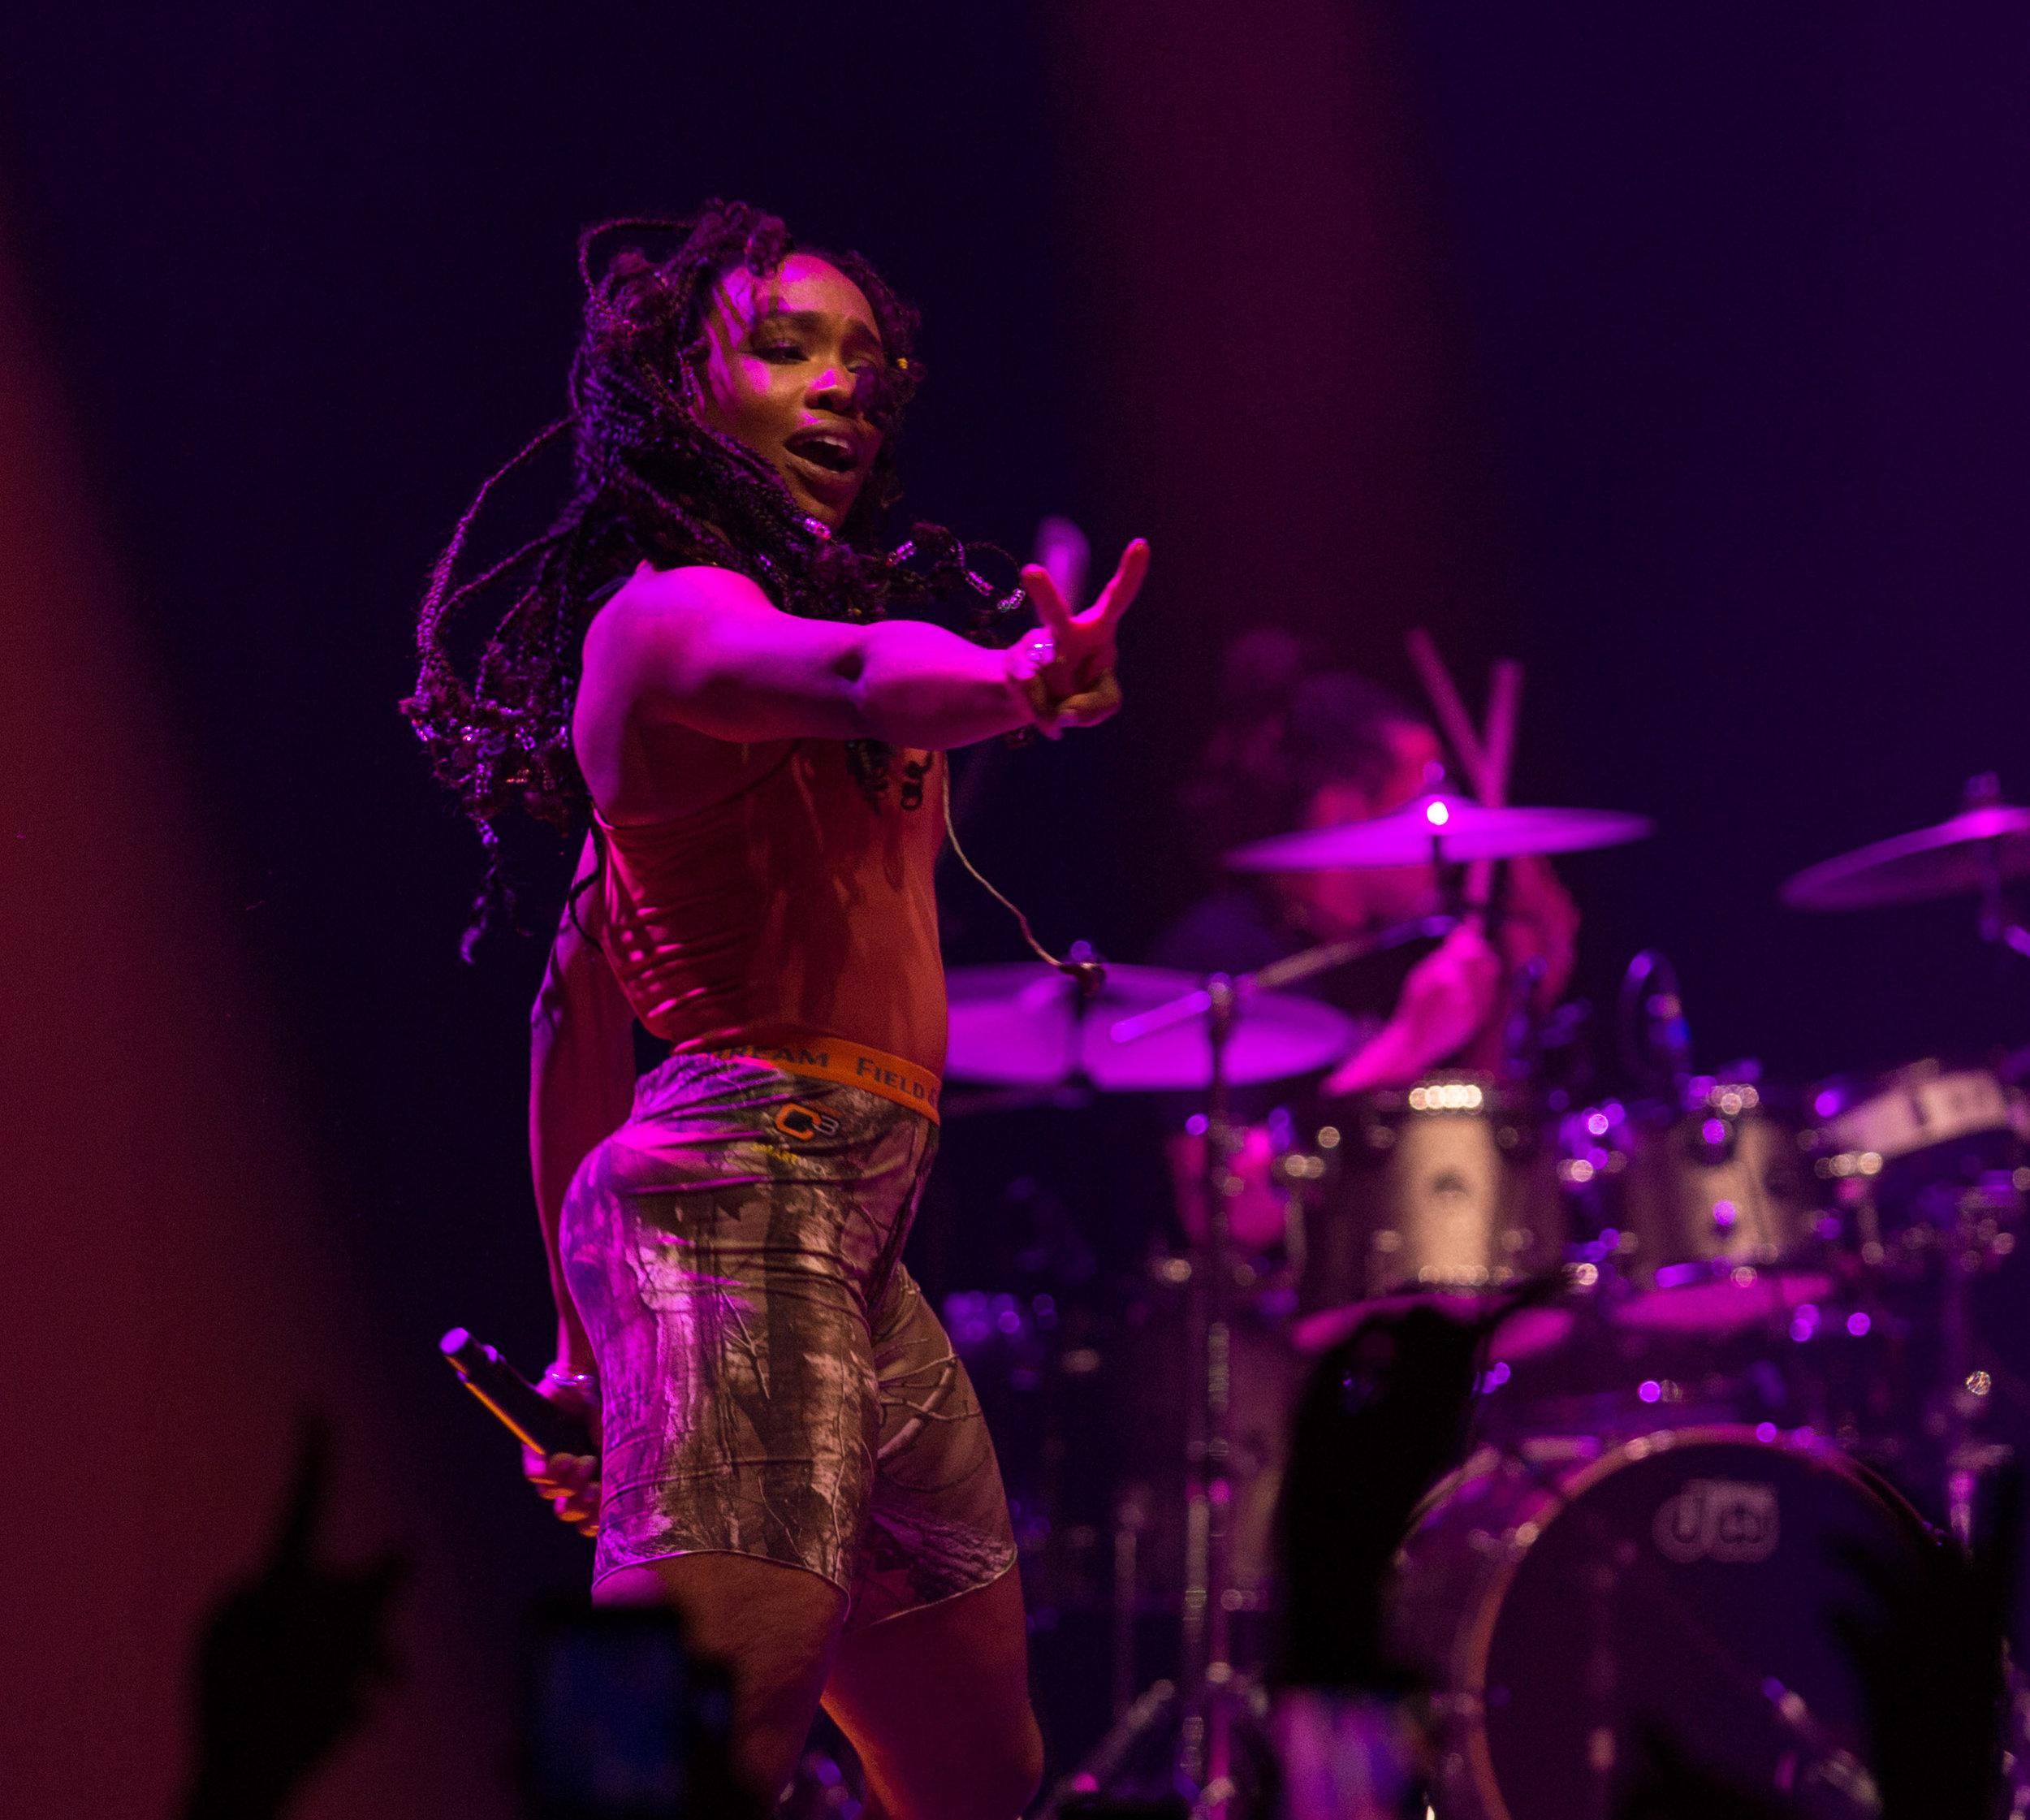 """American R&B singer Solána Imani Rowe """"SZA"""" puts up two fingers as she dances on stage during her performance of """"Prom"""" off of her debut album """"Ctrl"""" at the Novo in Los Angeles, Calif. on Tuesday, Nov. 14, 2017. The show was not originally on SZA's """"Ctrl"""" tour but was recently added due to high demand. Photo by Thane Fernandes."""